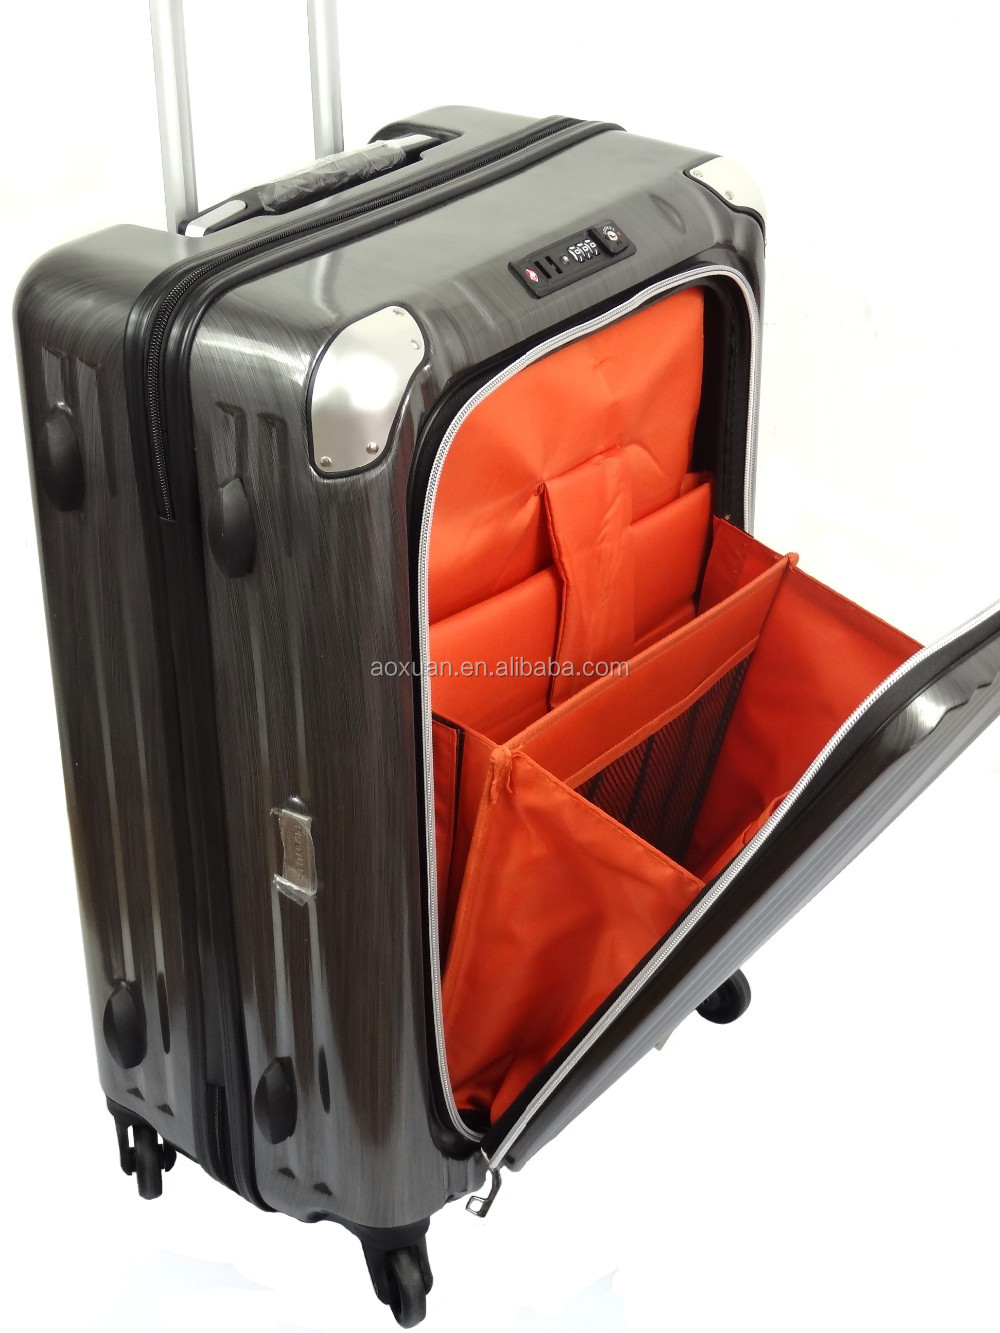 Zipper Pocket Luggage Abs Pc Hard Shell Spinner Luggage - Buy Zipper ... 5e585a7aa8